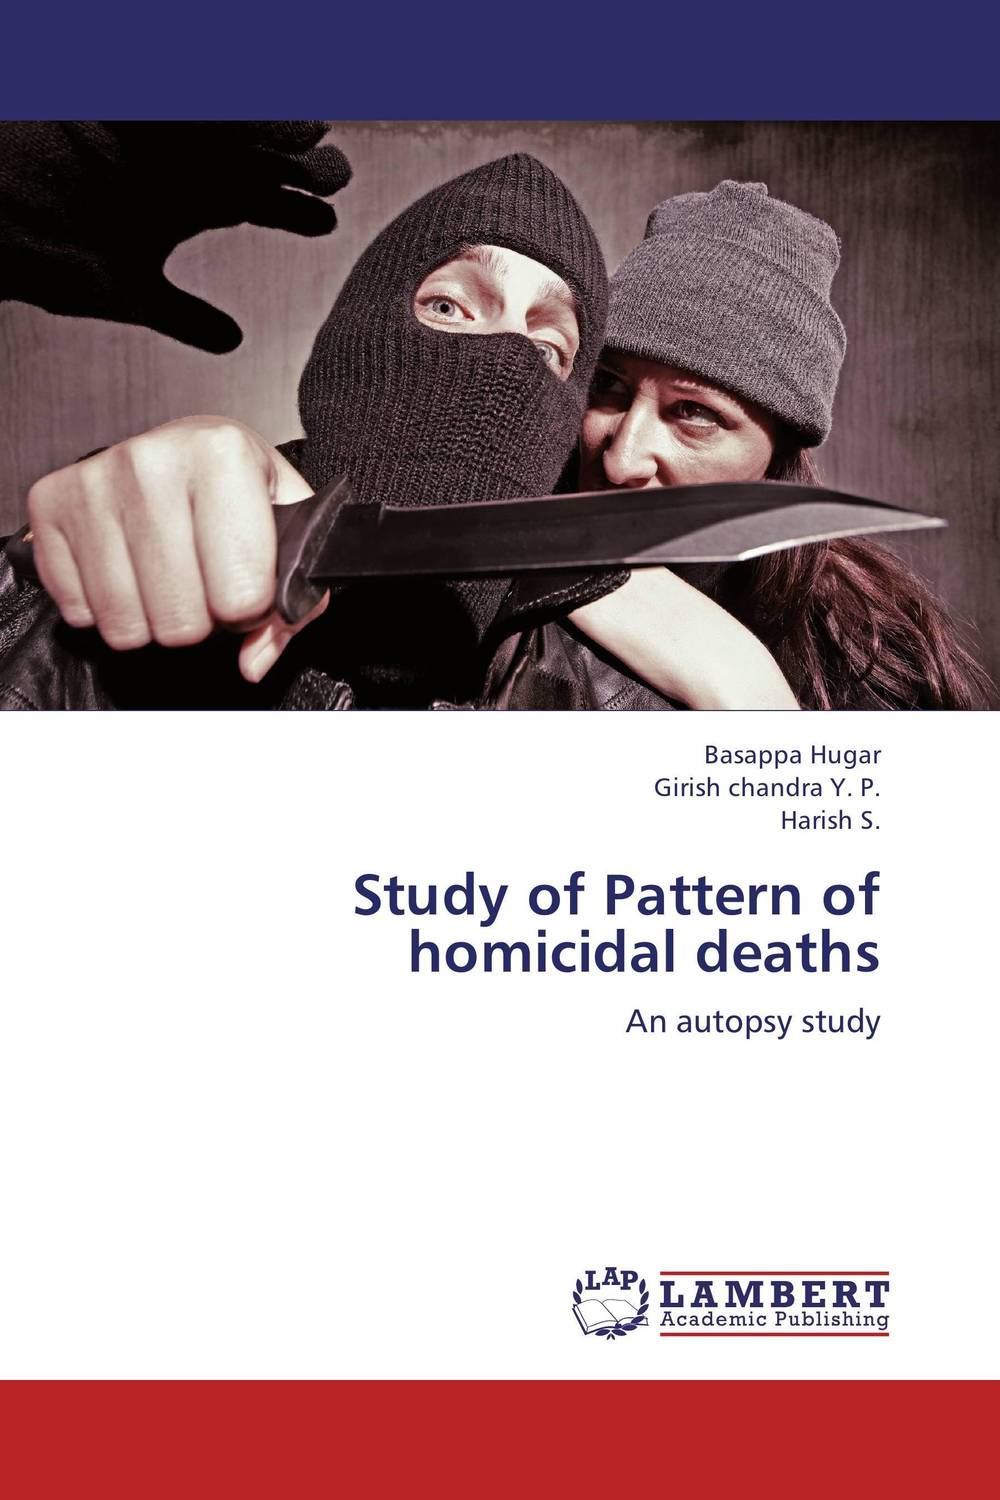 Study of Pattern of homicidal deaths a study of the religio political thought of abdurrahman wahid